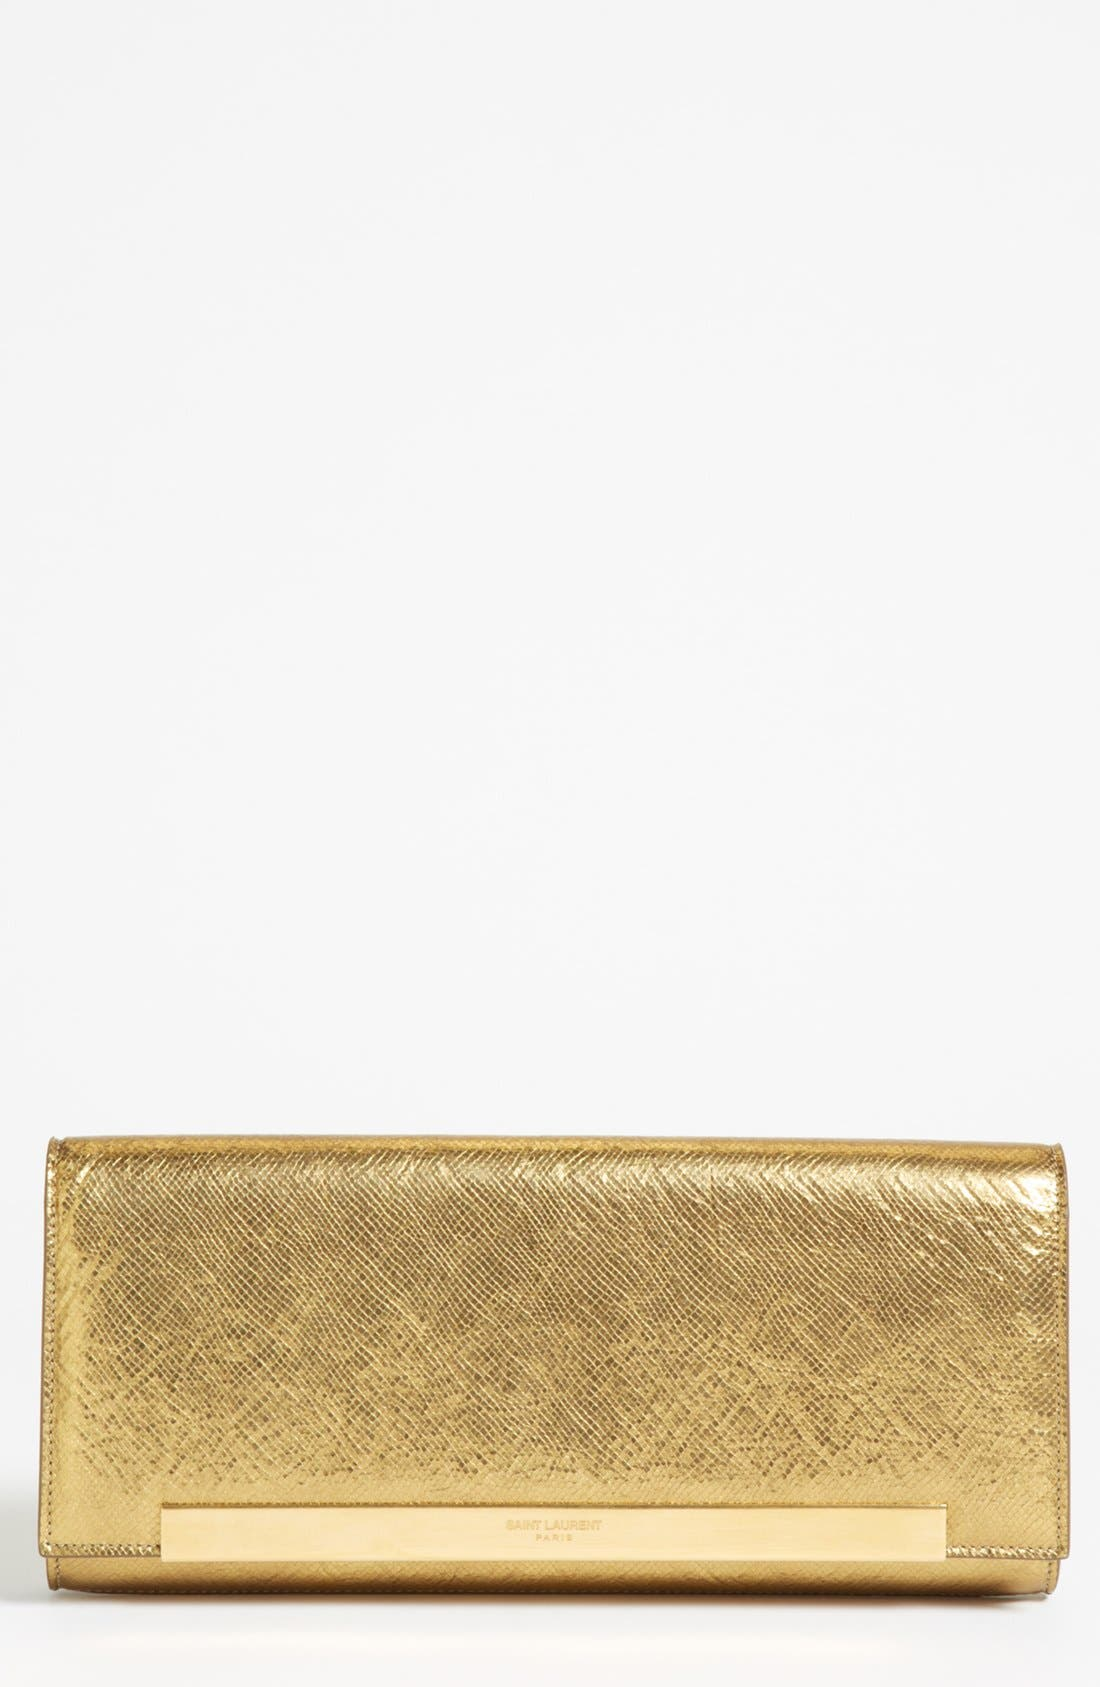 Alternate Image 1 Selected - Saint Laurent 'Lutetia - Antic' Leather Clutch